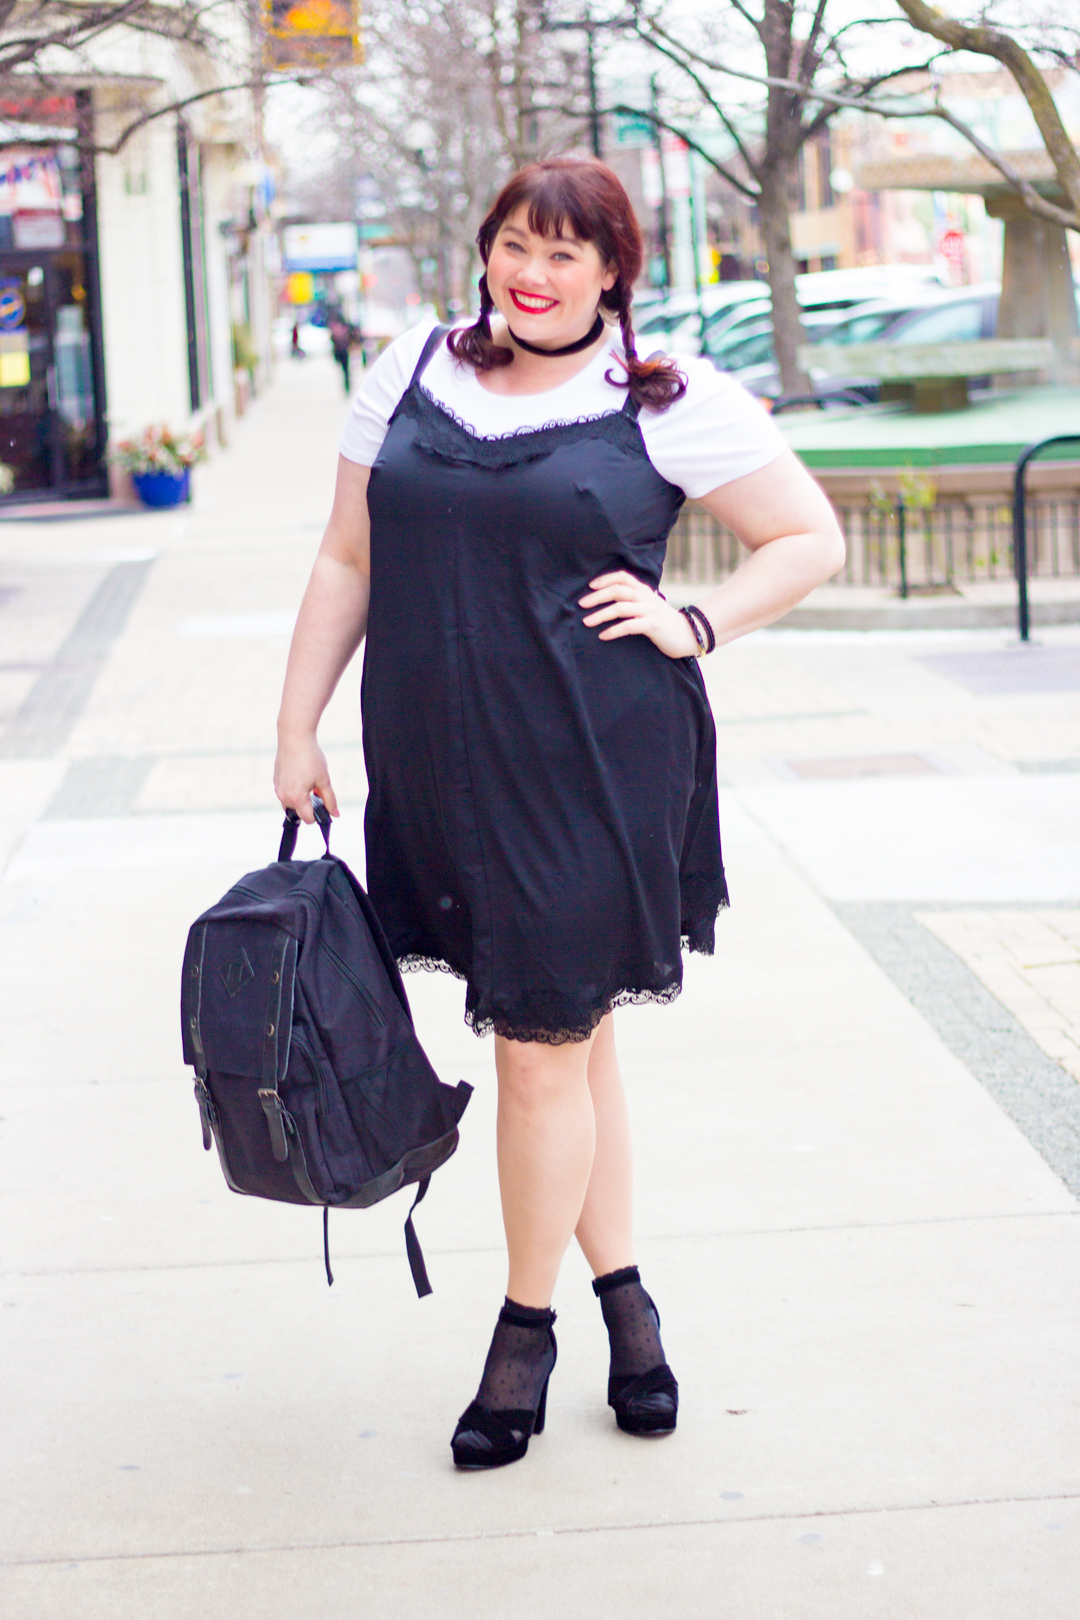 Chicago Plus Size Blogger wears a Glamour x Lane Bryant Slip Dress and rocks the 90s Fashion Trend T-shirts Under Slipdresses